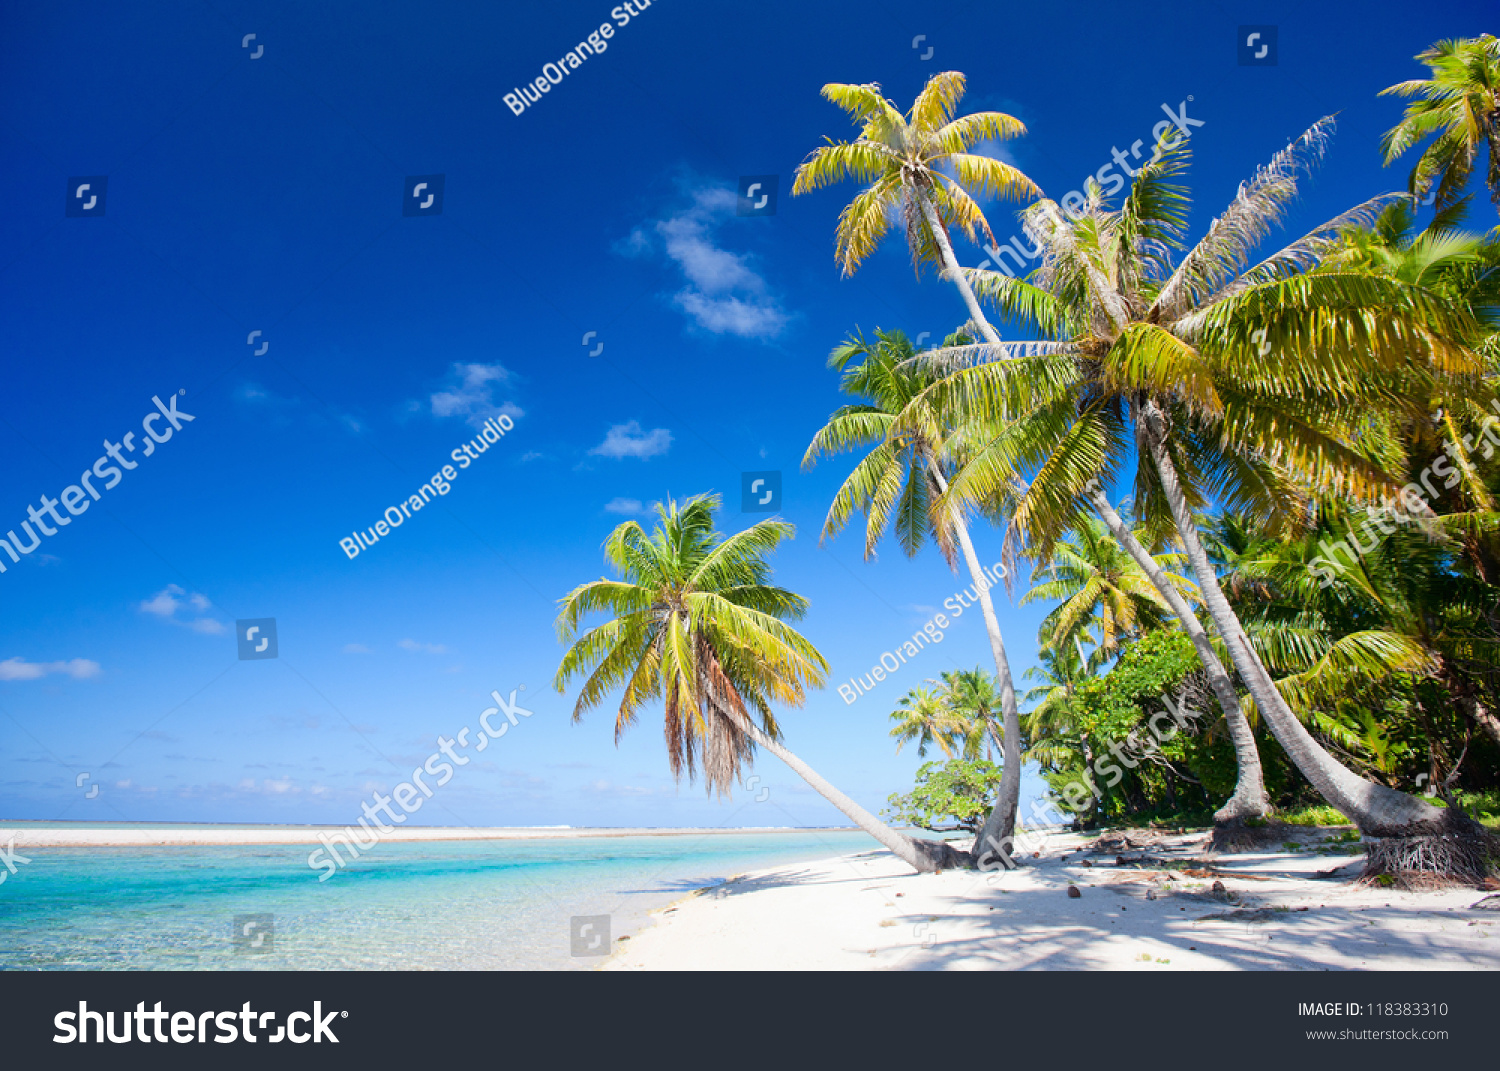 Tikehau Atoll French Polynesia  City new picture : Beautiful Beach At Tikehau Atoll In French Polynesia Stock Photo ...